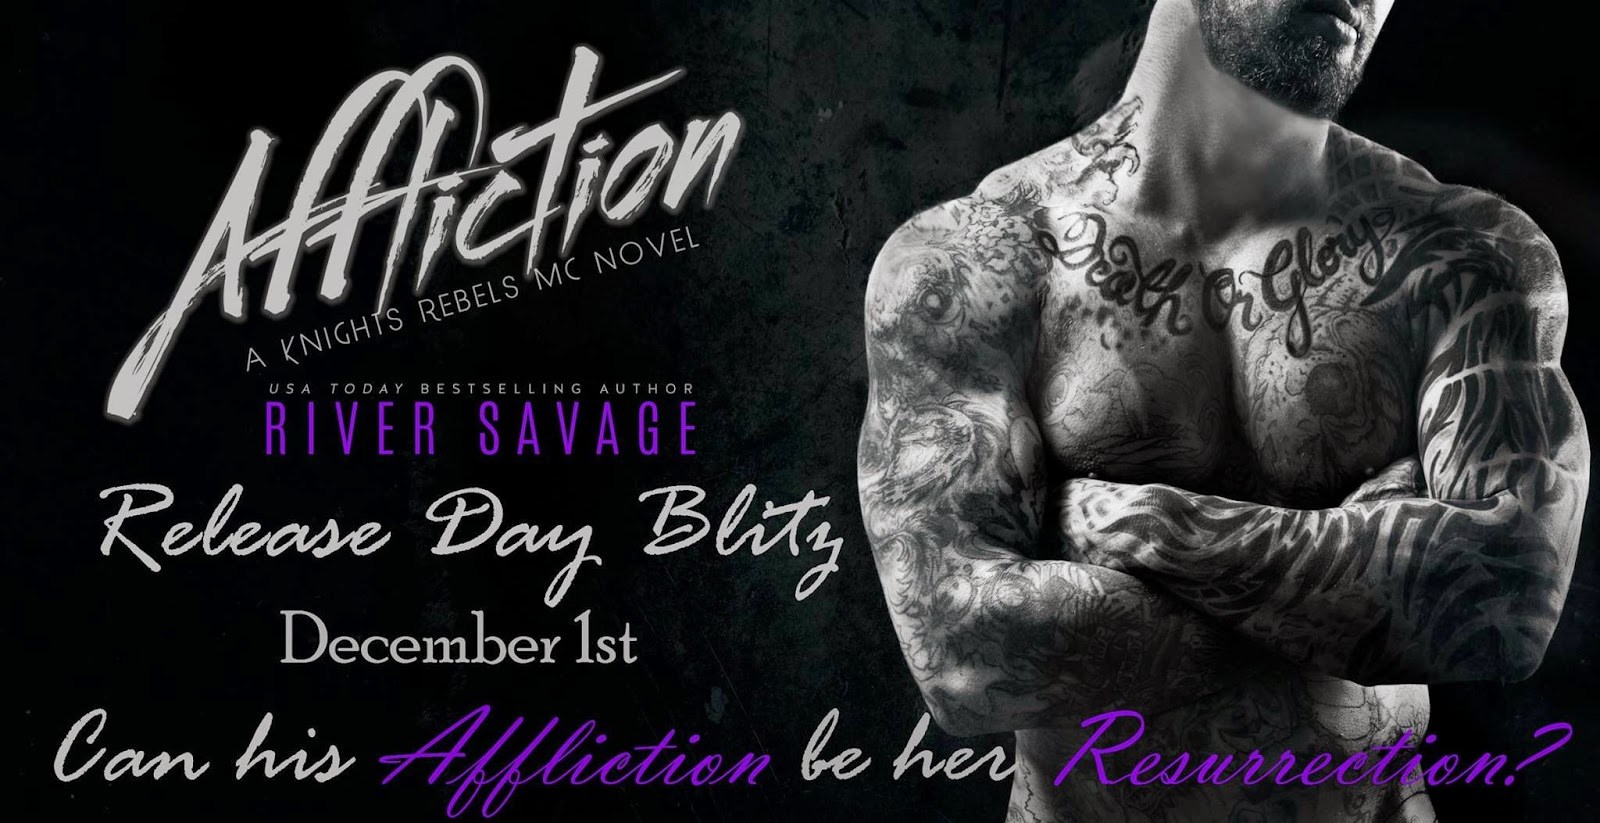 Affliction (Knights Rebels MC #2) Release Day Blitz with Giveaway!!